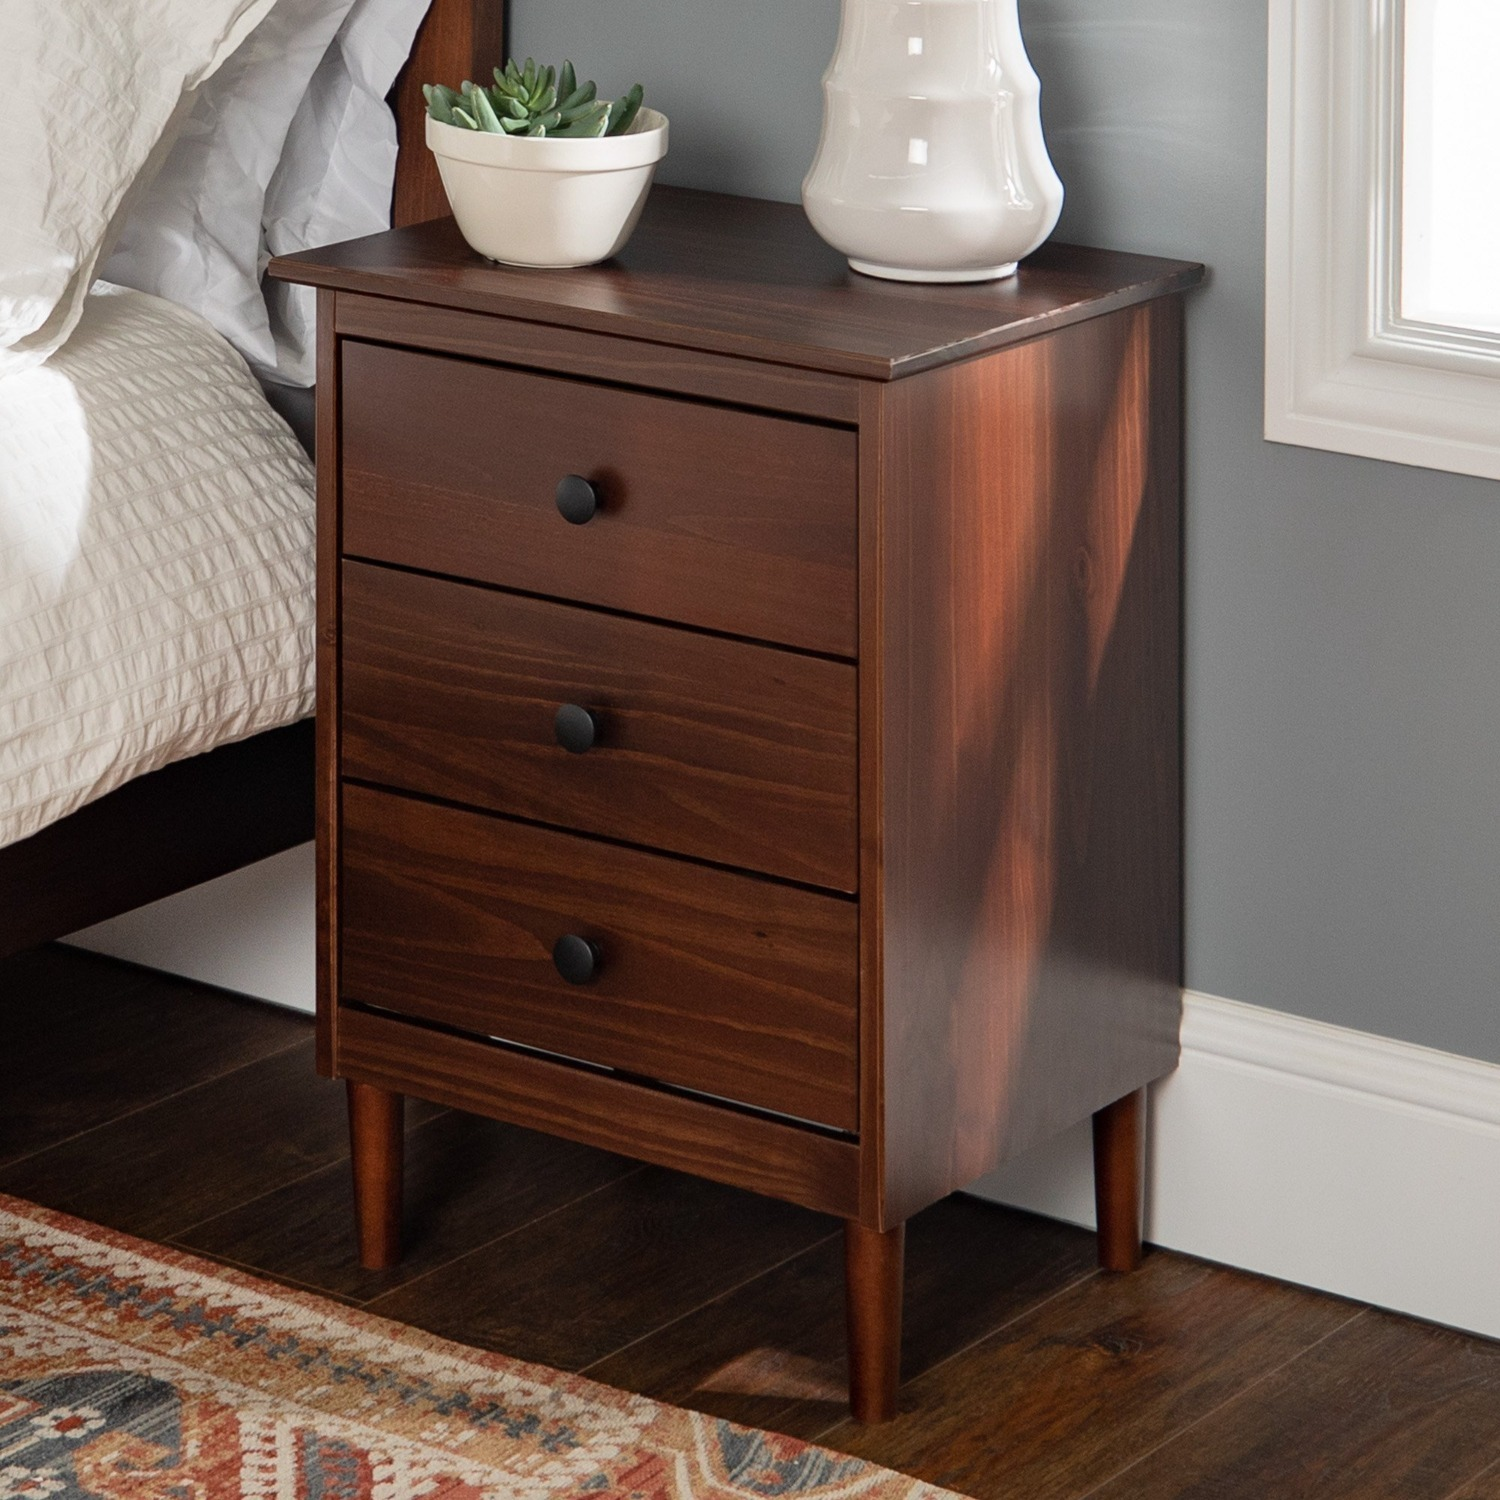 Spencer Solid Wood 3 Drawer Nightstand - image-1